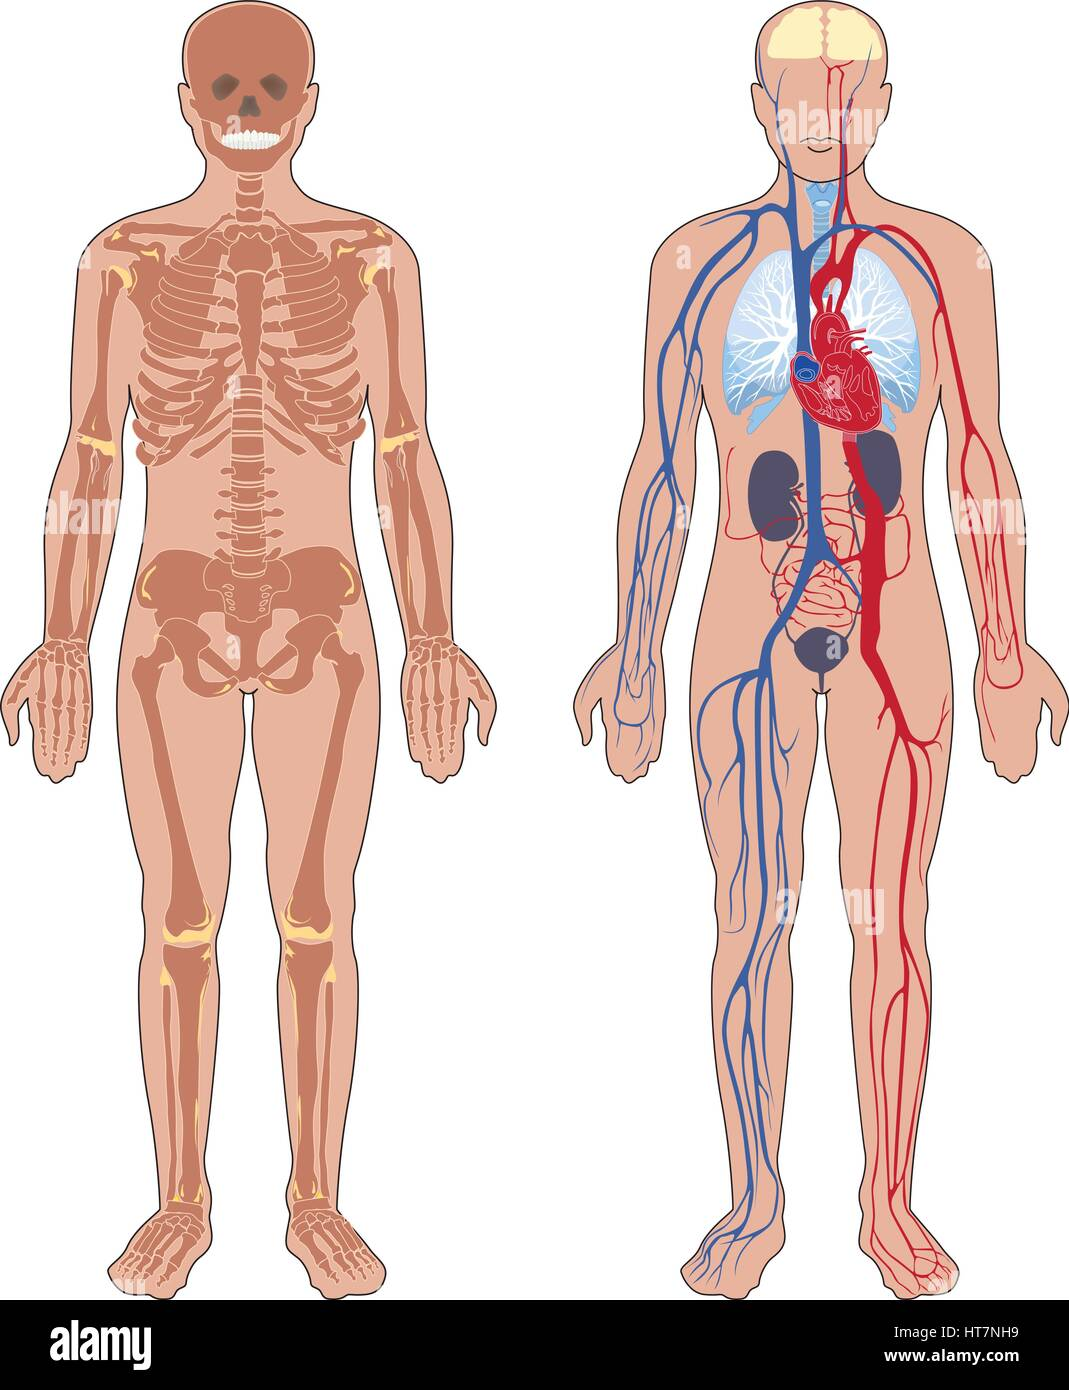 Human anatomy. Set of vector illustration isolated on white background. Human body structure: skeleton and circulatory - Stock Image